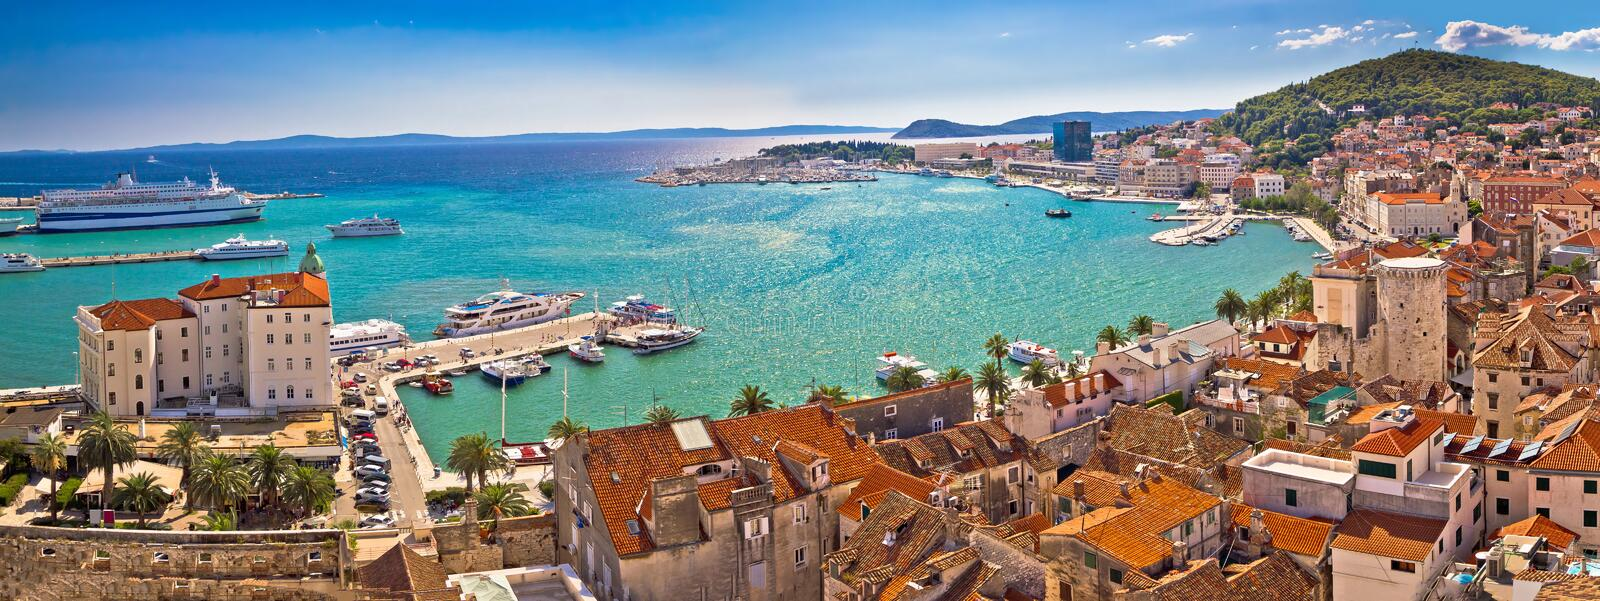 Split historic waterfront panoramic aerial view. Dalmatia, Croatia royalty free stock image